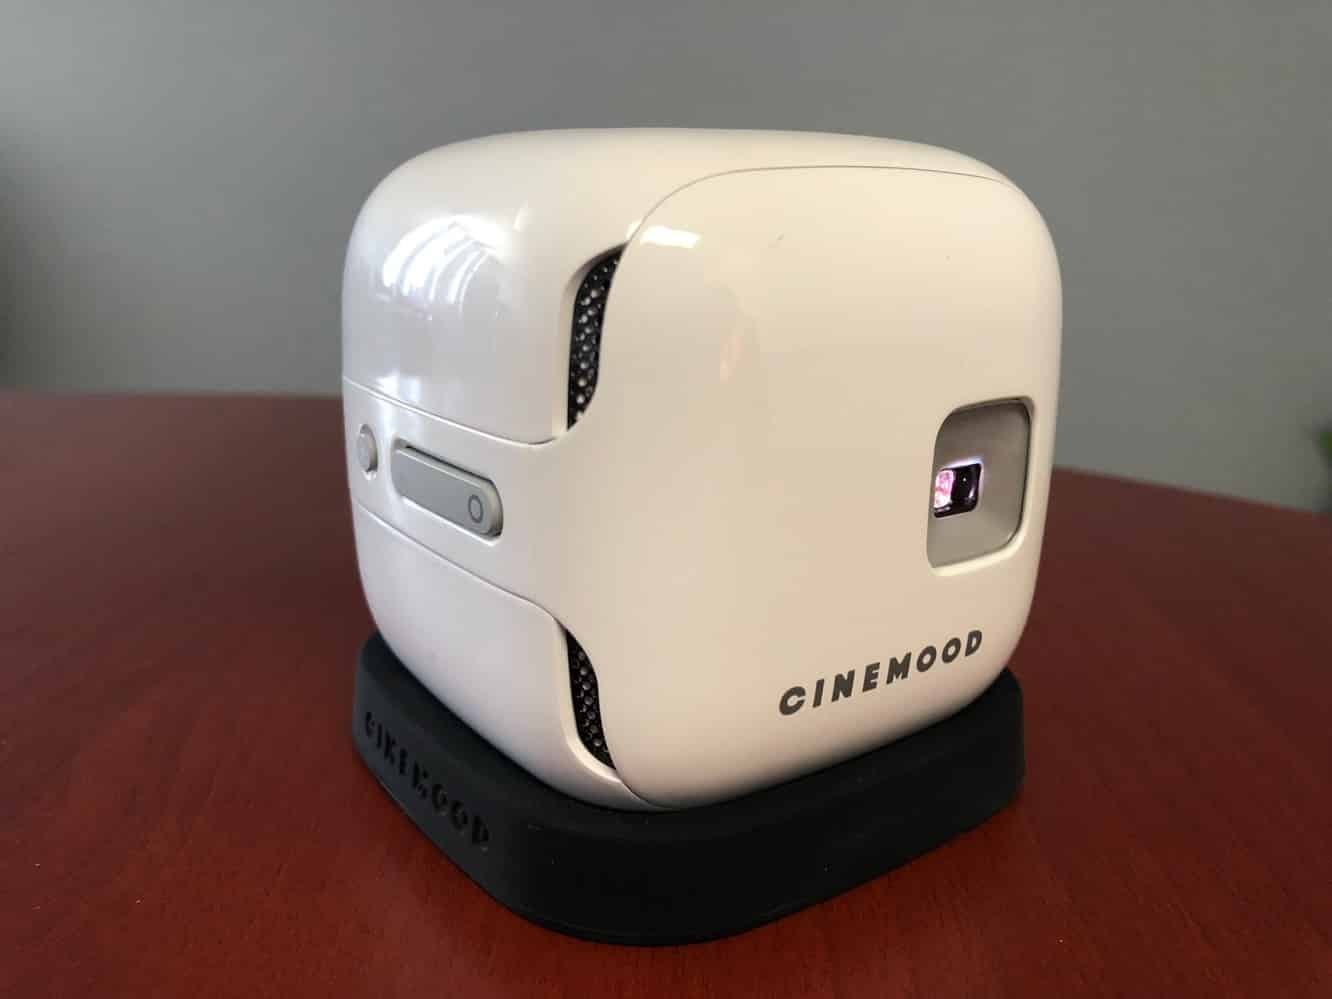 Review: Cinemood Storyteller Portable Projector